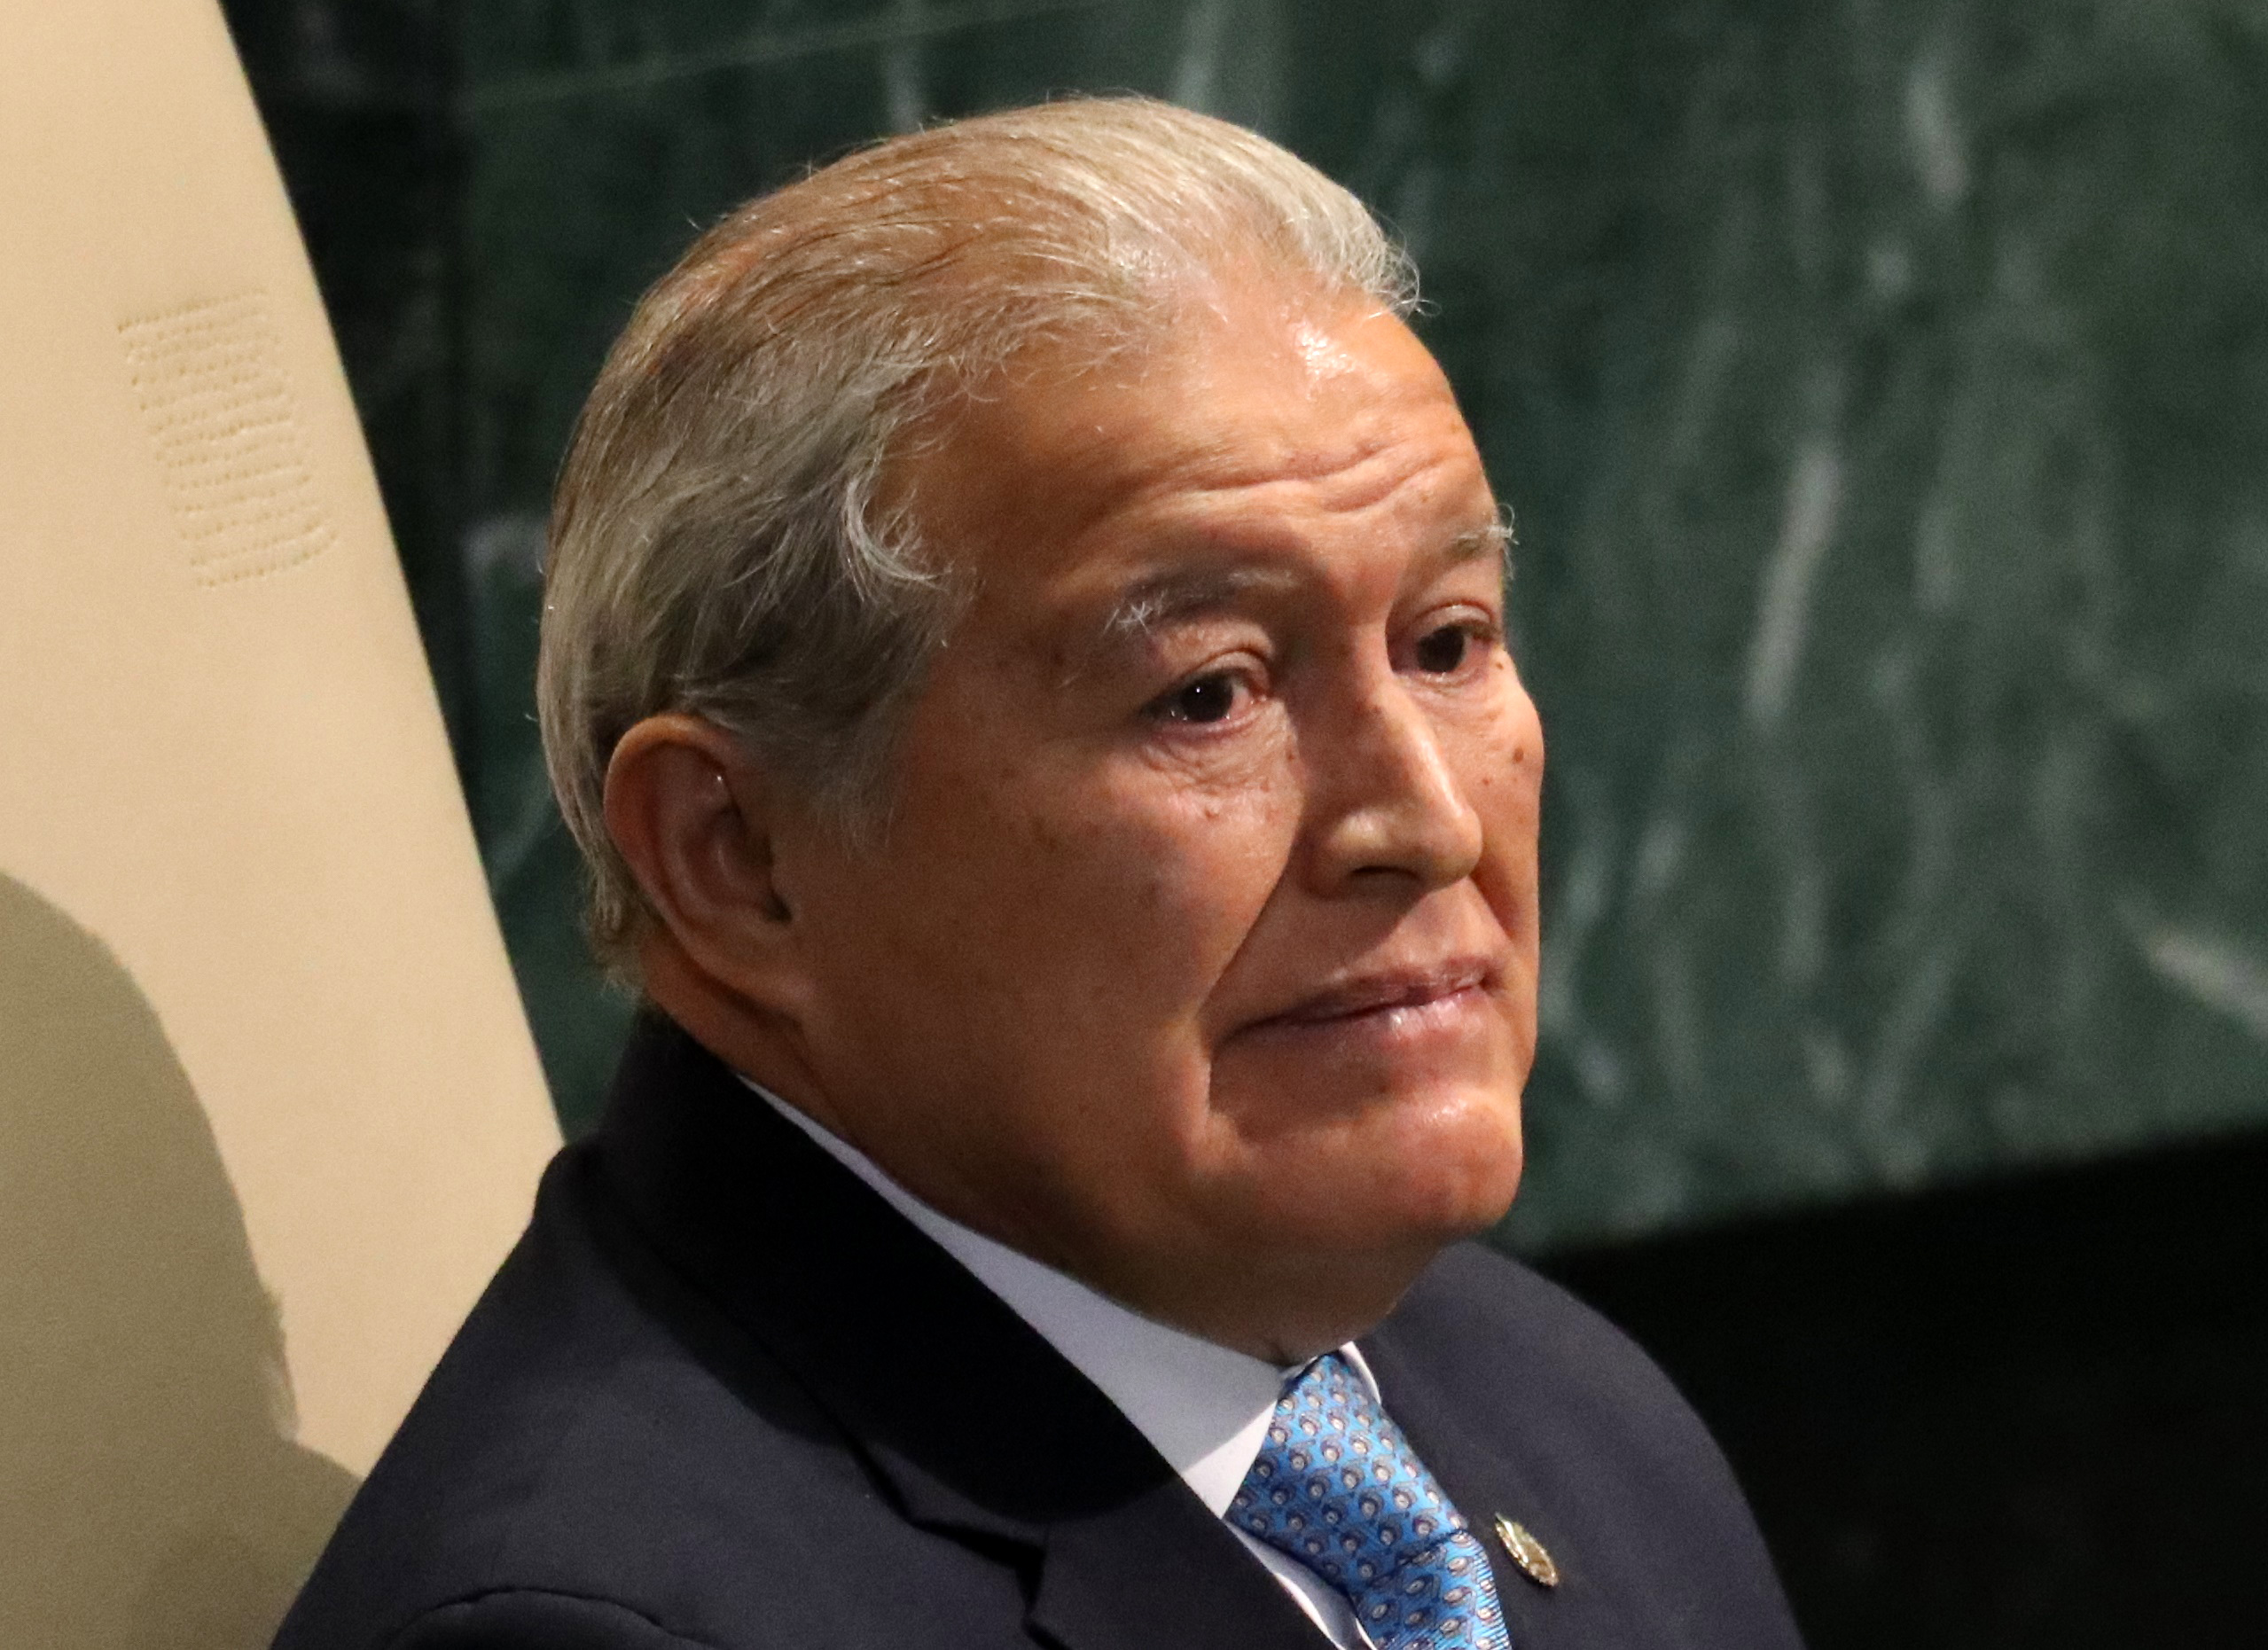 President Salvador Sanchez Ceren of El Salvador waits to address the United Nations General Assembly in the Manhattan borough of New York, U.S., September 22, 2016.  REUTERS/Carlo Allegri